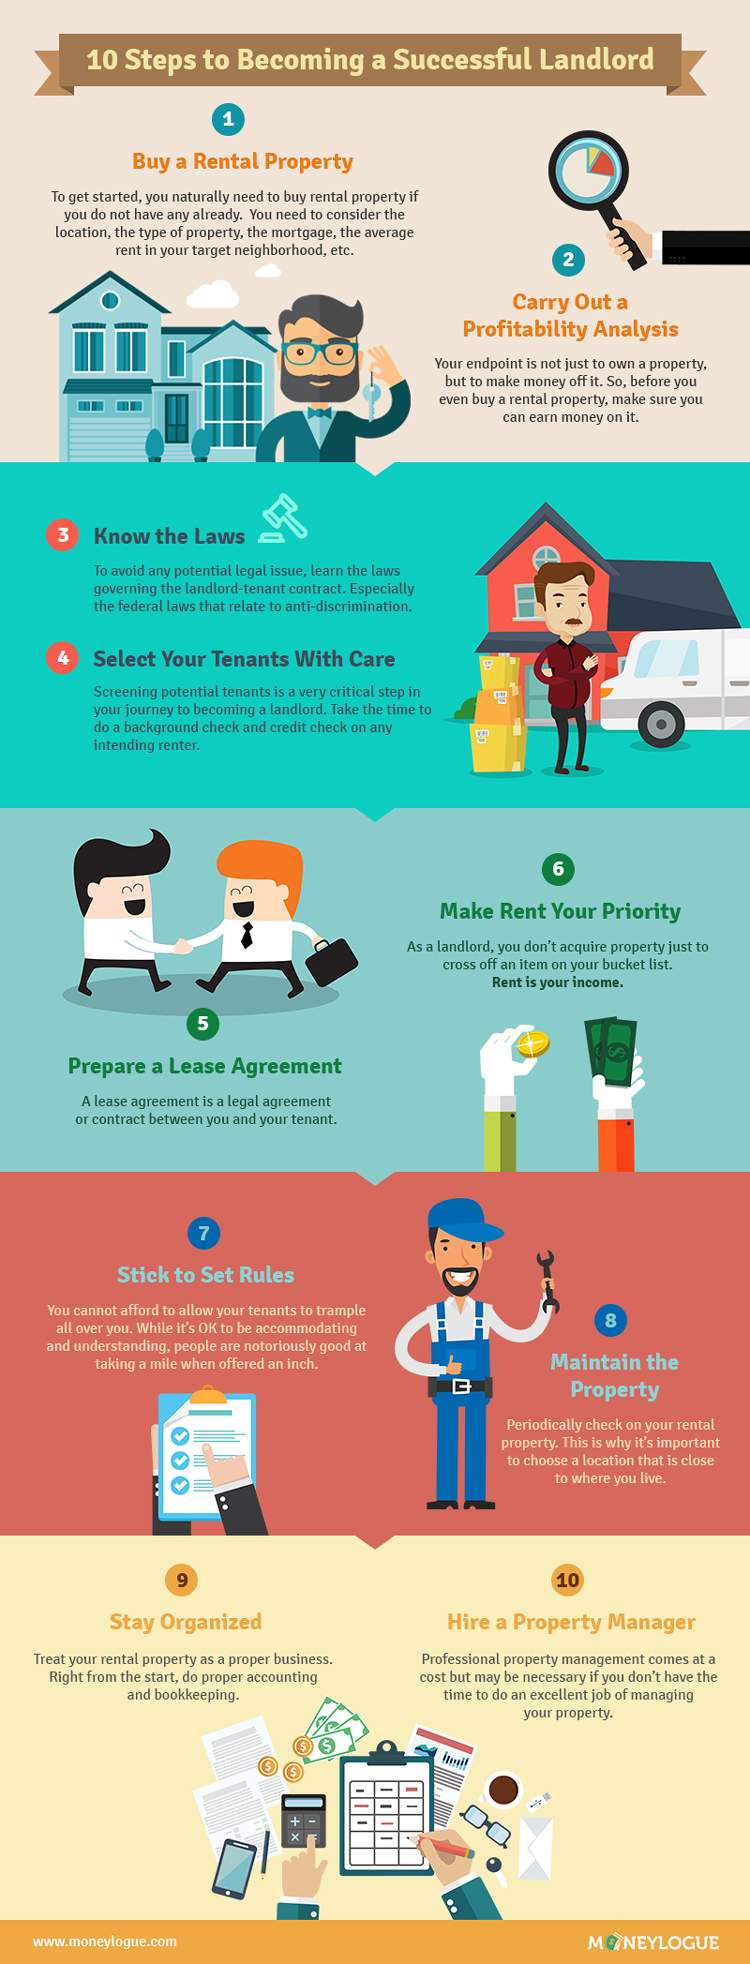 steps to becoming a landlord